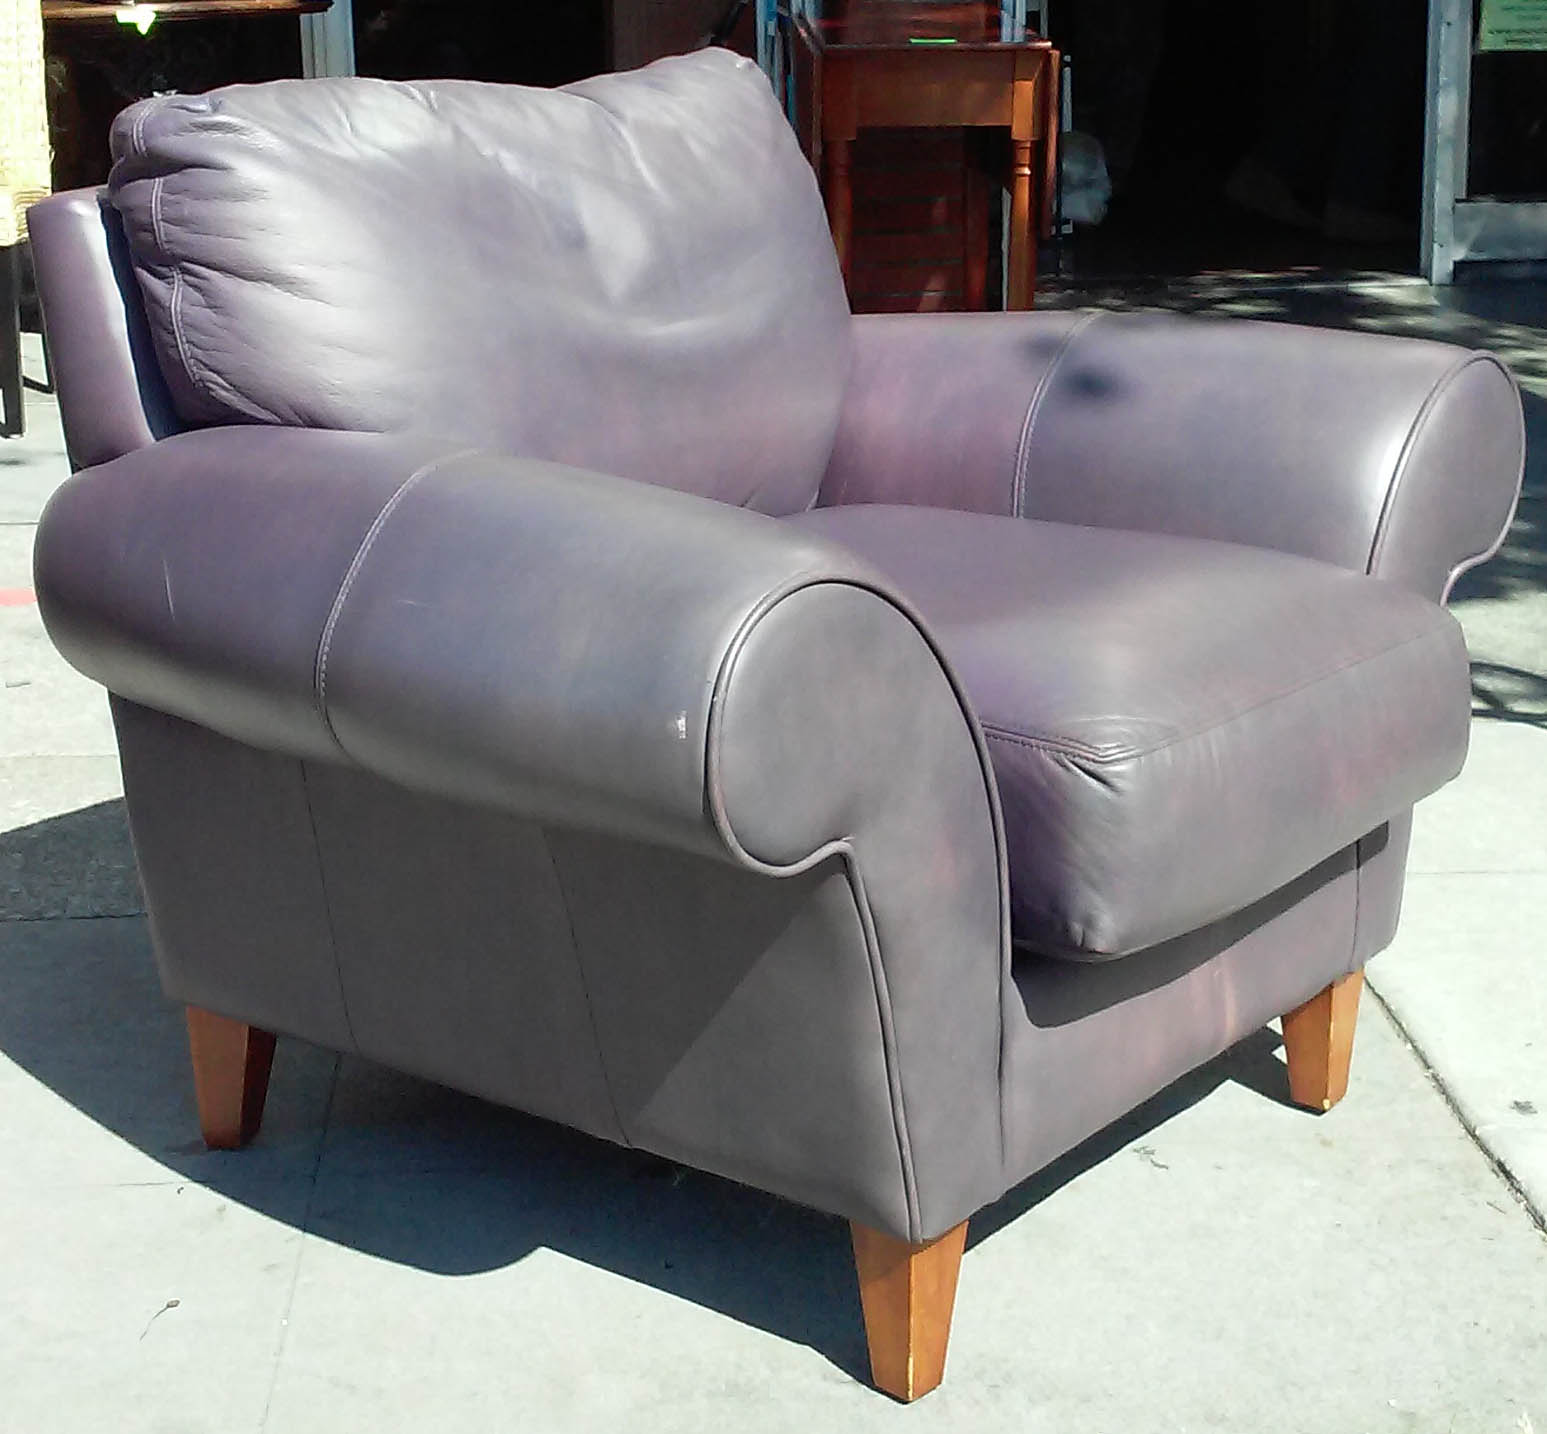 plum leather sofa how to replace cushion seats uhuru furniture and collectibles sold chair 175